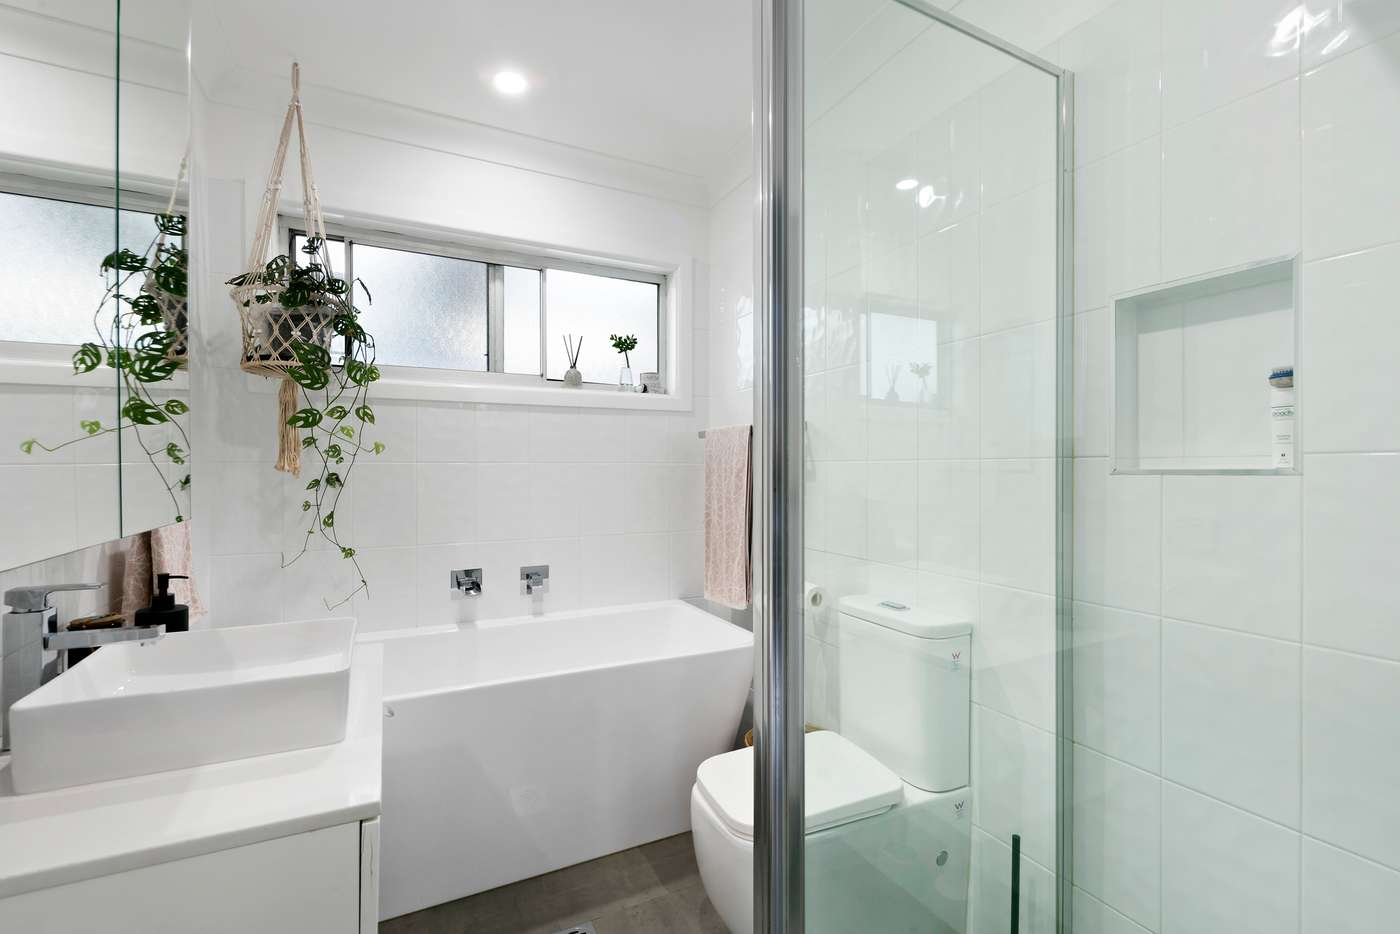 Fifth view of Homely house listing, 22 Central Avenue, Oak Flats NSW 2529